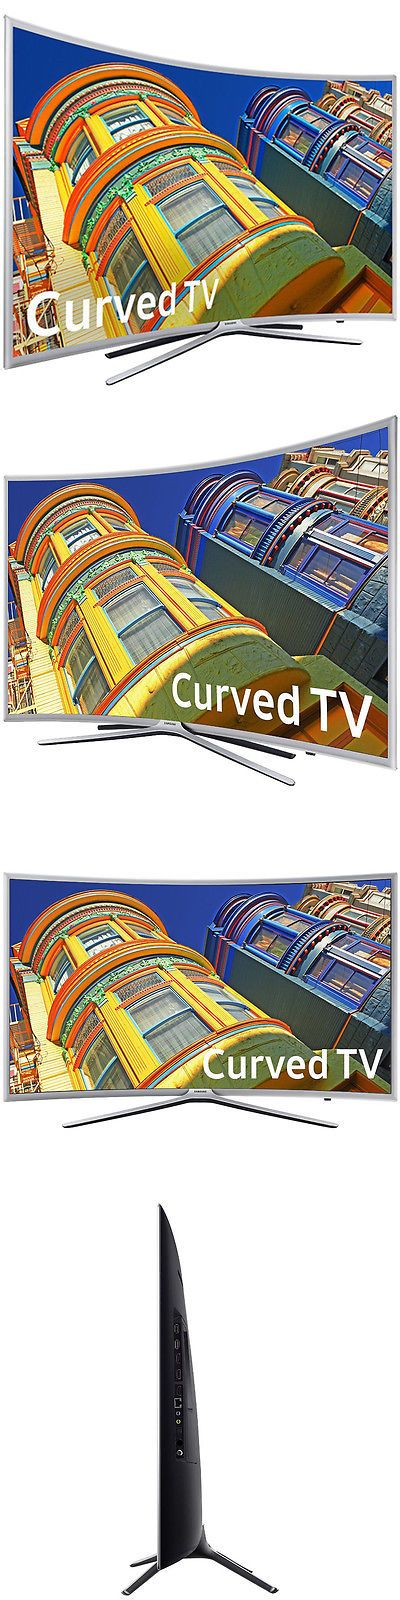 Televisions: Samsung Un55k6250 - Curved 55-Inch 1080P Full Hd Led Smart Tv - K6250 6-Series -> BUY IT NOW ONLY: $749.99 on eBay!